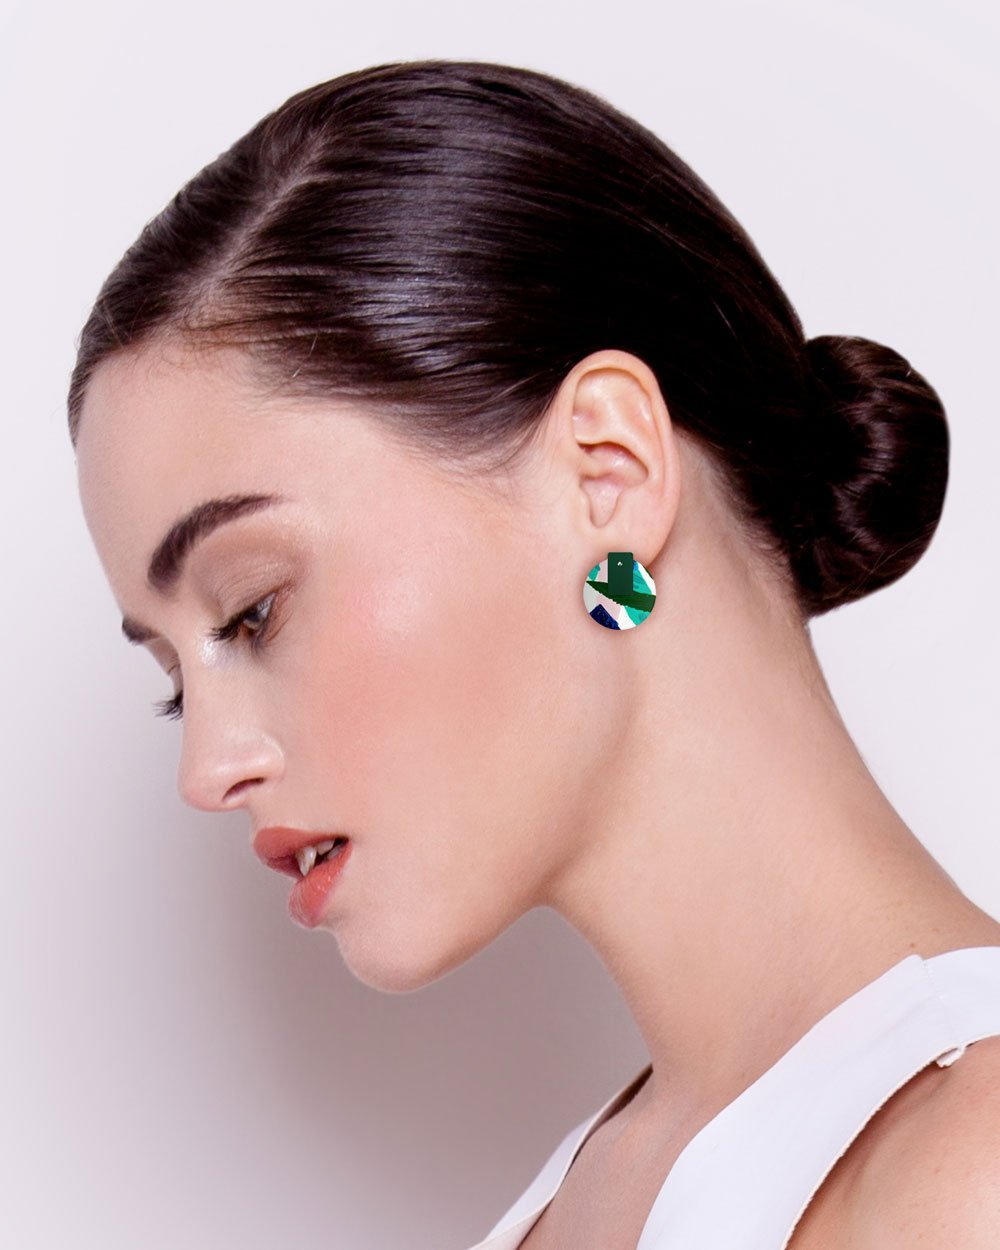 Hero Kate Mayes Layered Medium Circle Stud Earrings